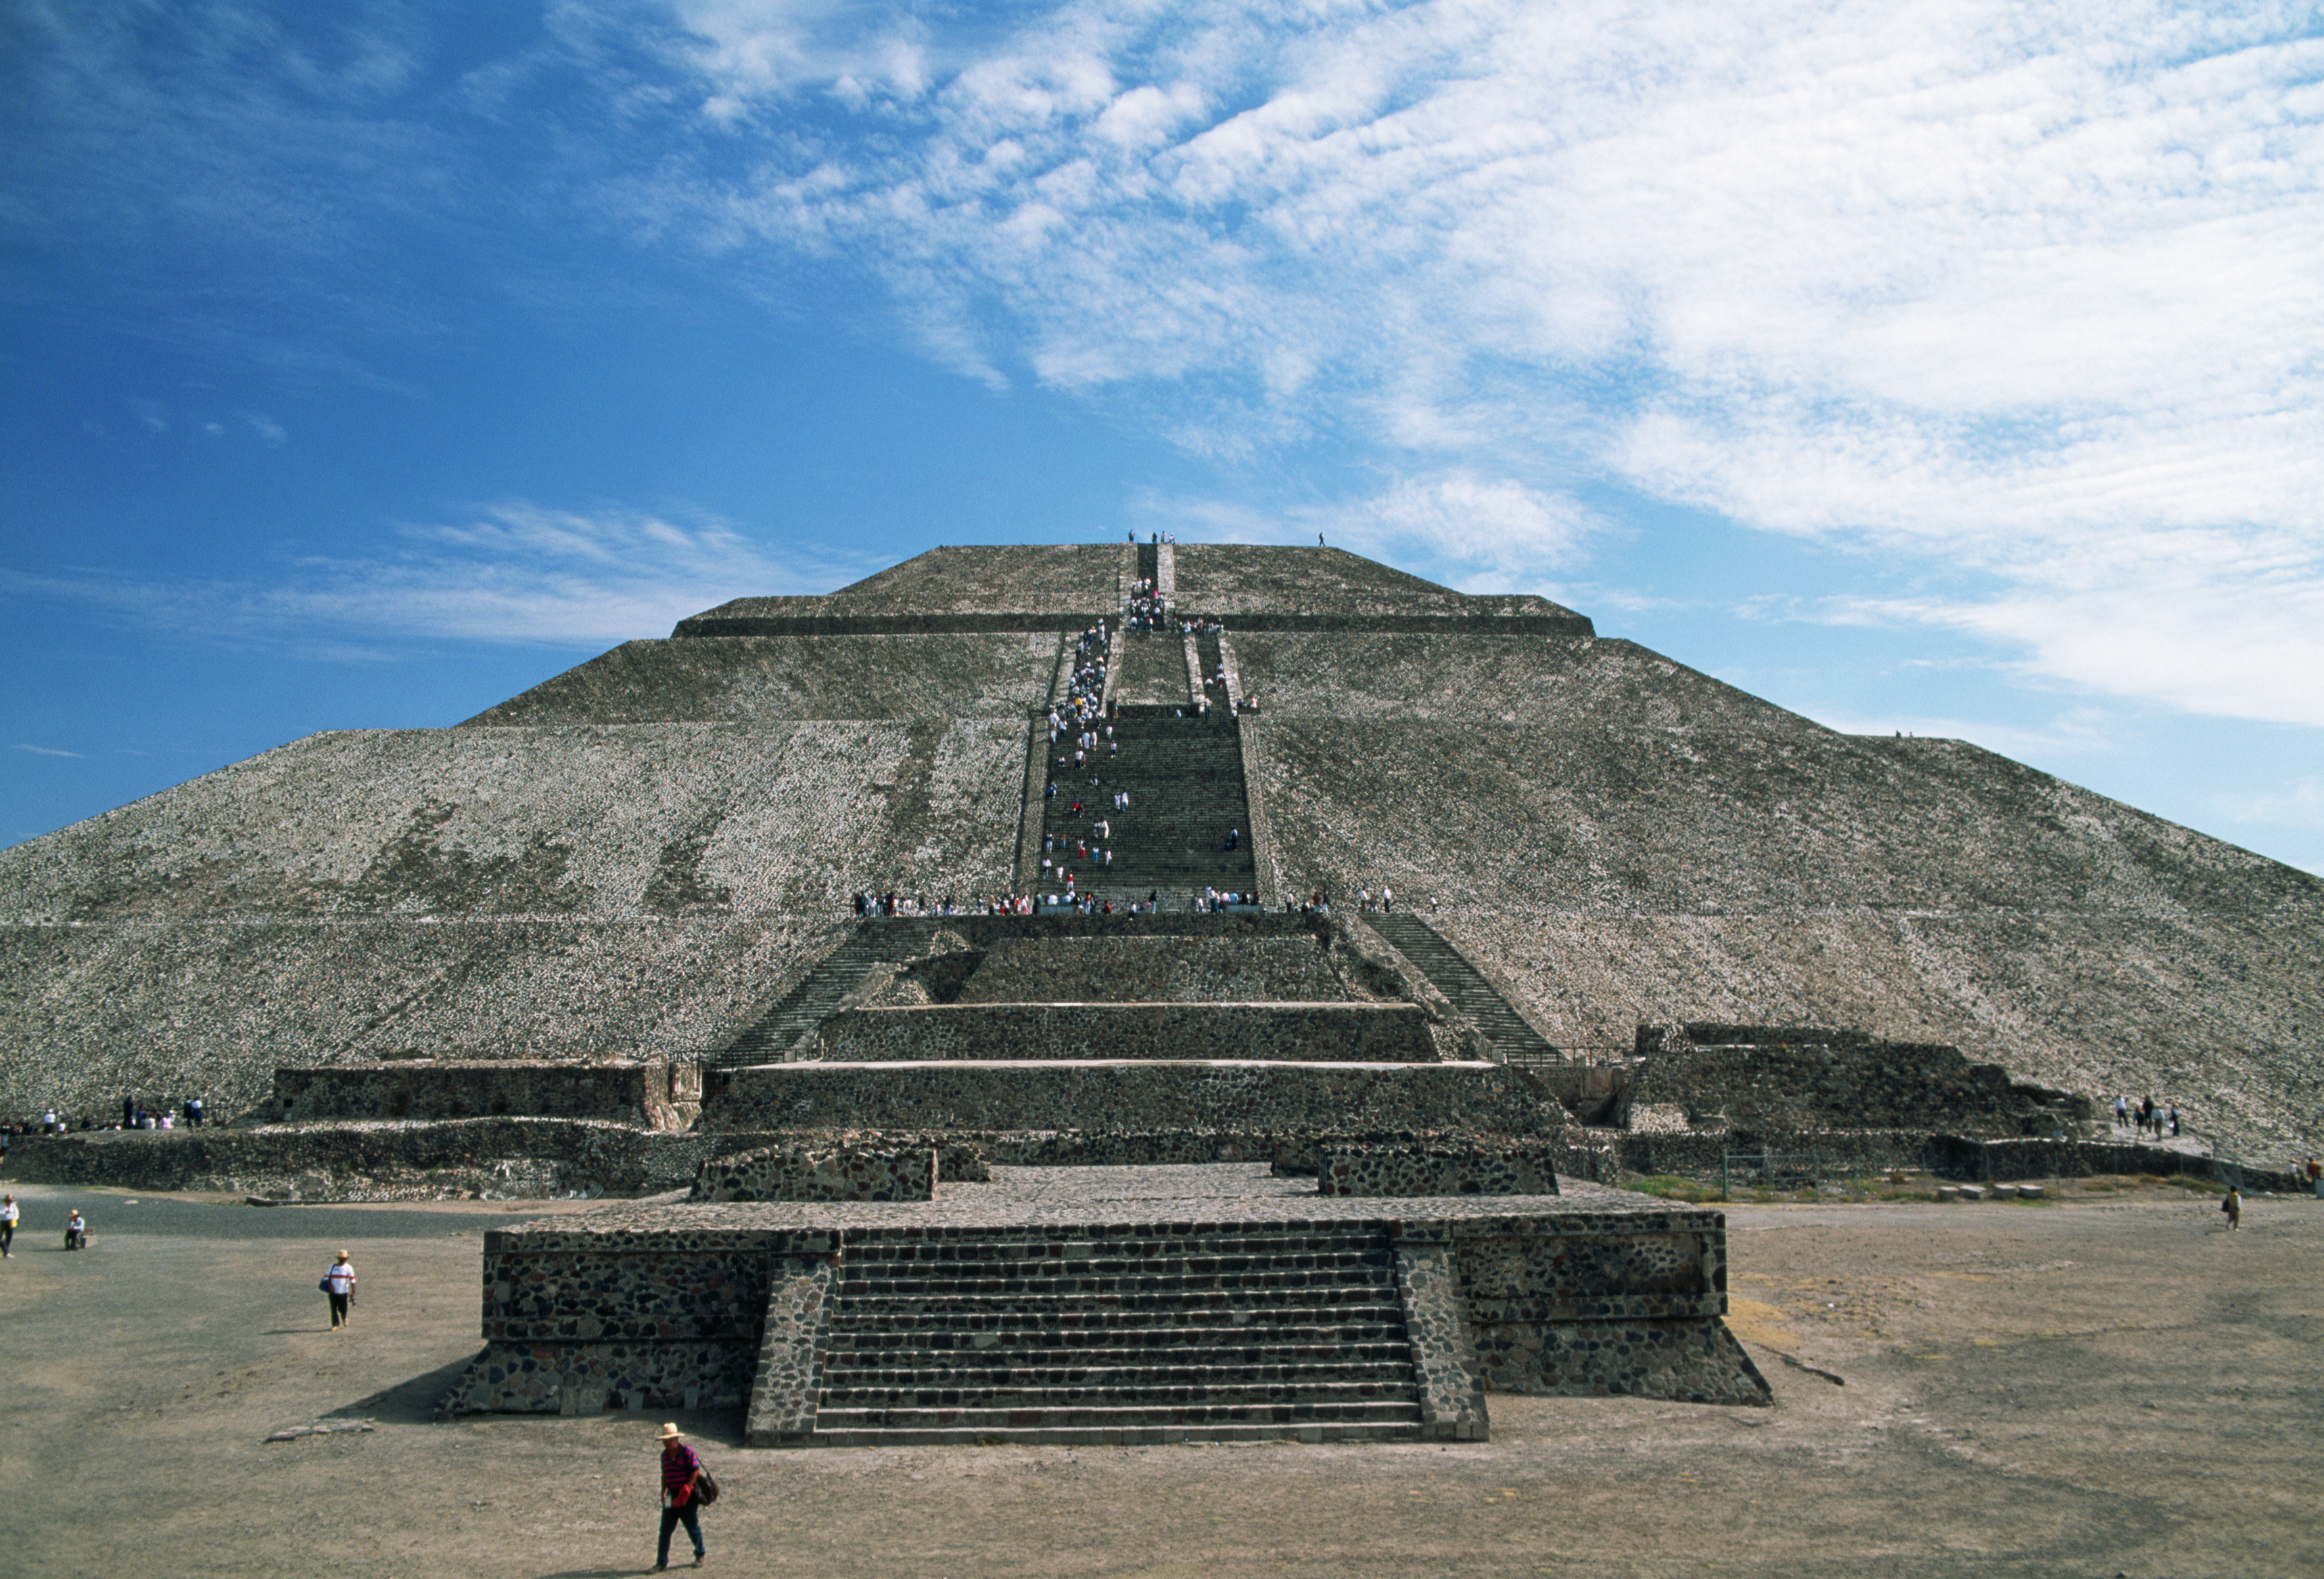 the pyramids of teotihuacan history essay Around 650 ad the teotihuacan influence slowly began to decline essays related to mexican history 1 mexican history mexican history pre-columbian ancient mexico is home to some of the earliest and most advanced civilizations in the western hemisphere.